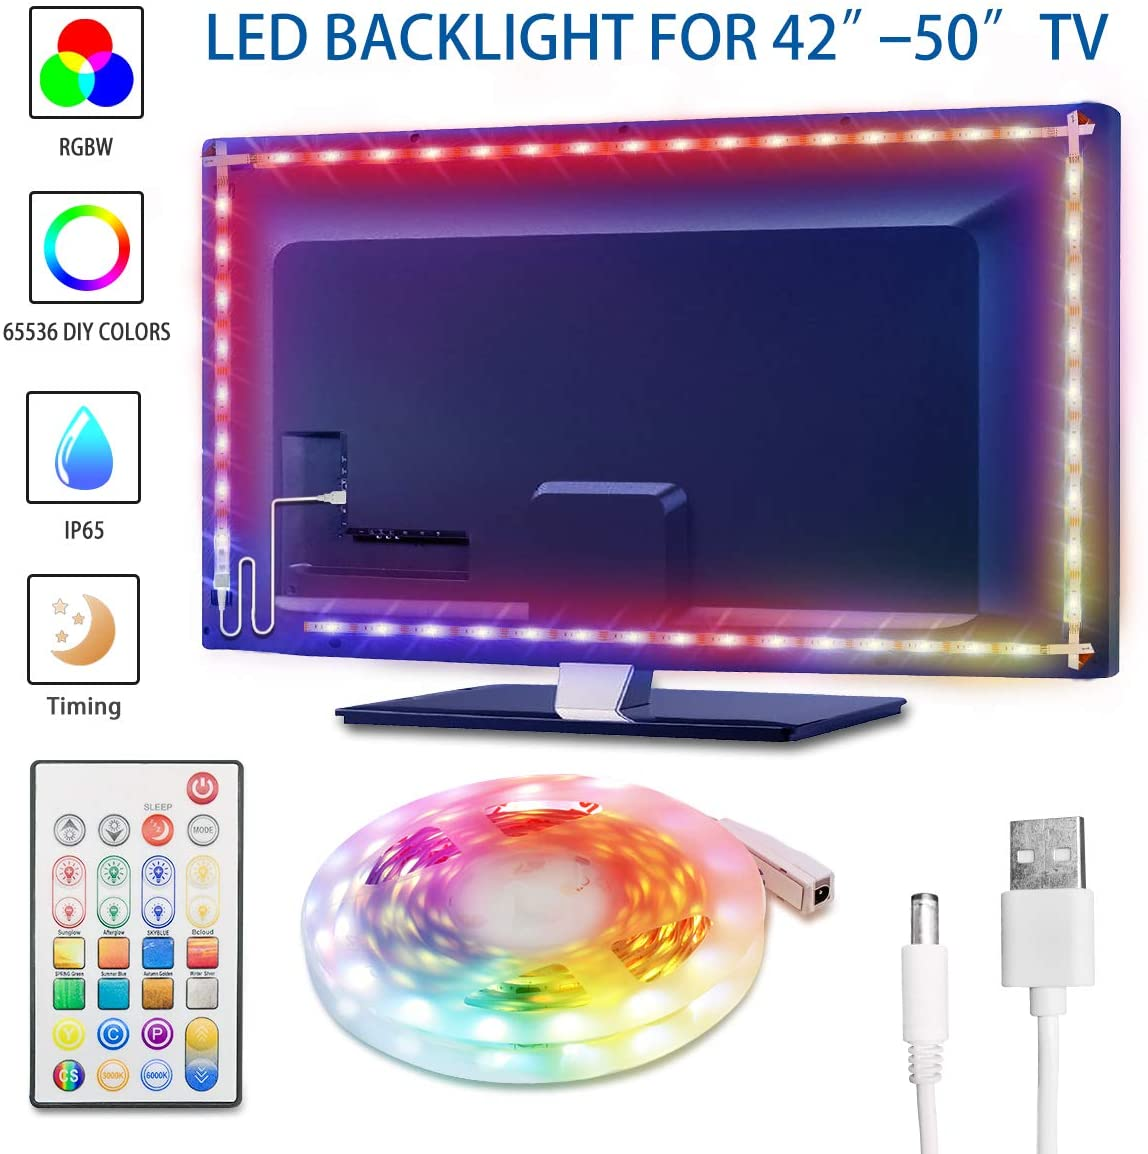 TV Backlight 8.3ft Waterproof RGBW 5050LEDs 65536 DIY Colors Changing LED Strip Lights with Remote 30mins Timing Off 5V USB Powered LED Tape Light Kits for 42-50in TV Monitor Bedroom Decor